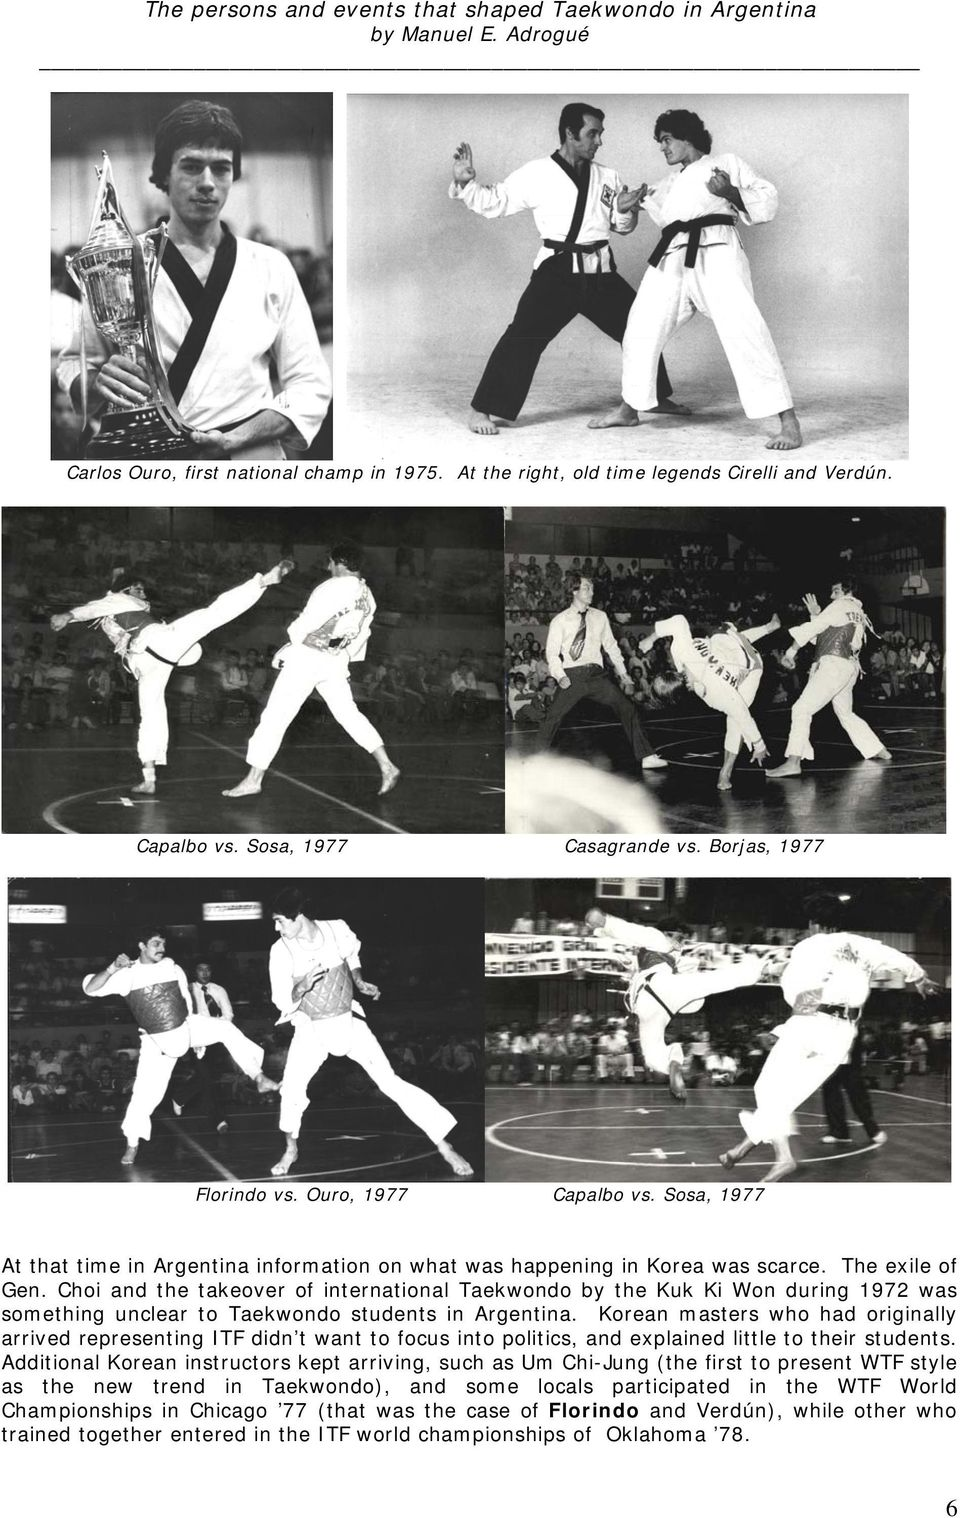 Choi and the takeover of international Taekwondo by the Kuk Ki Won during 1972 was something unclear to Taekwondo students in Argentina.